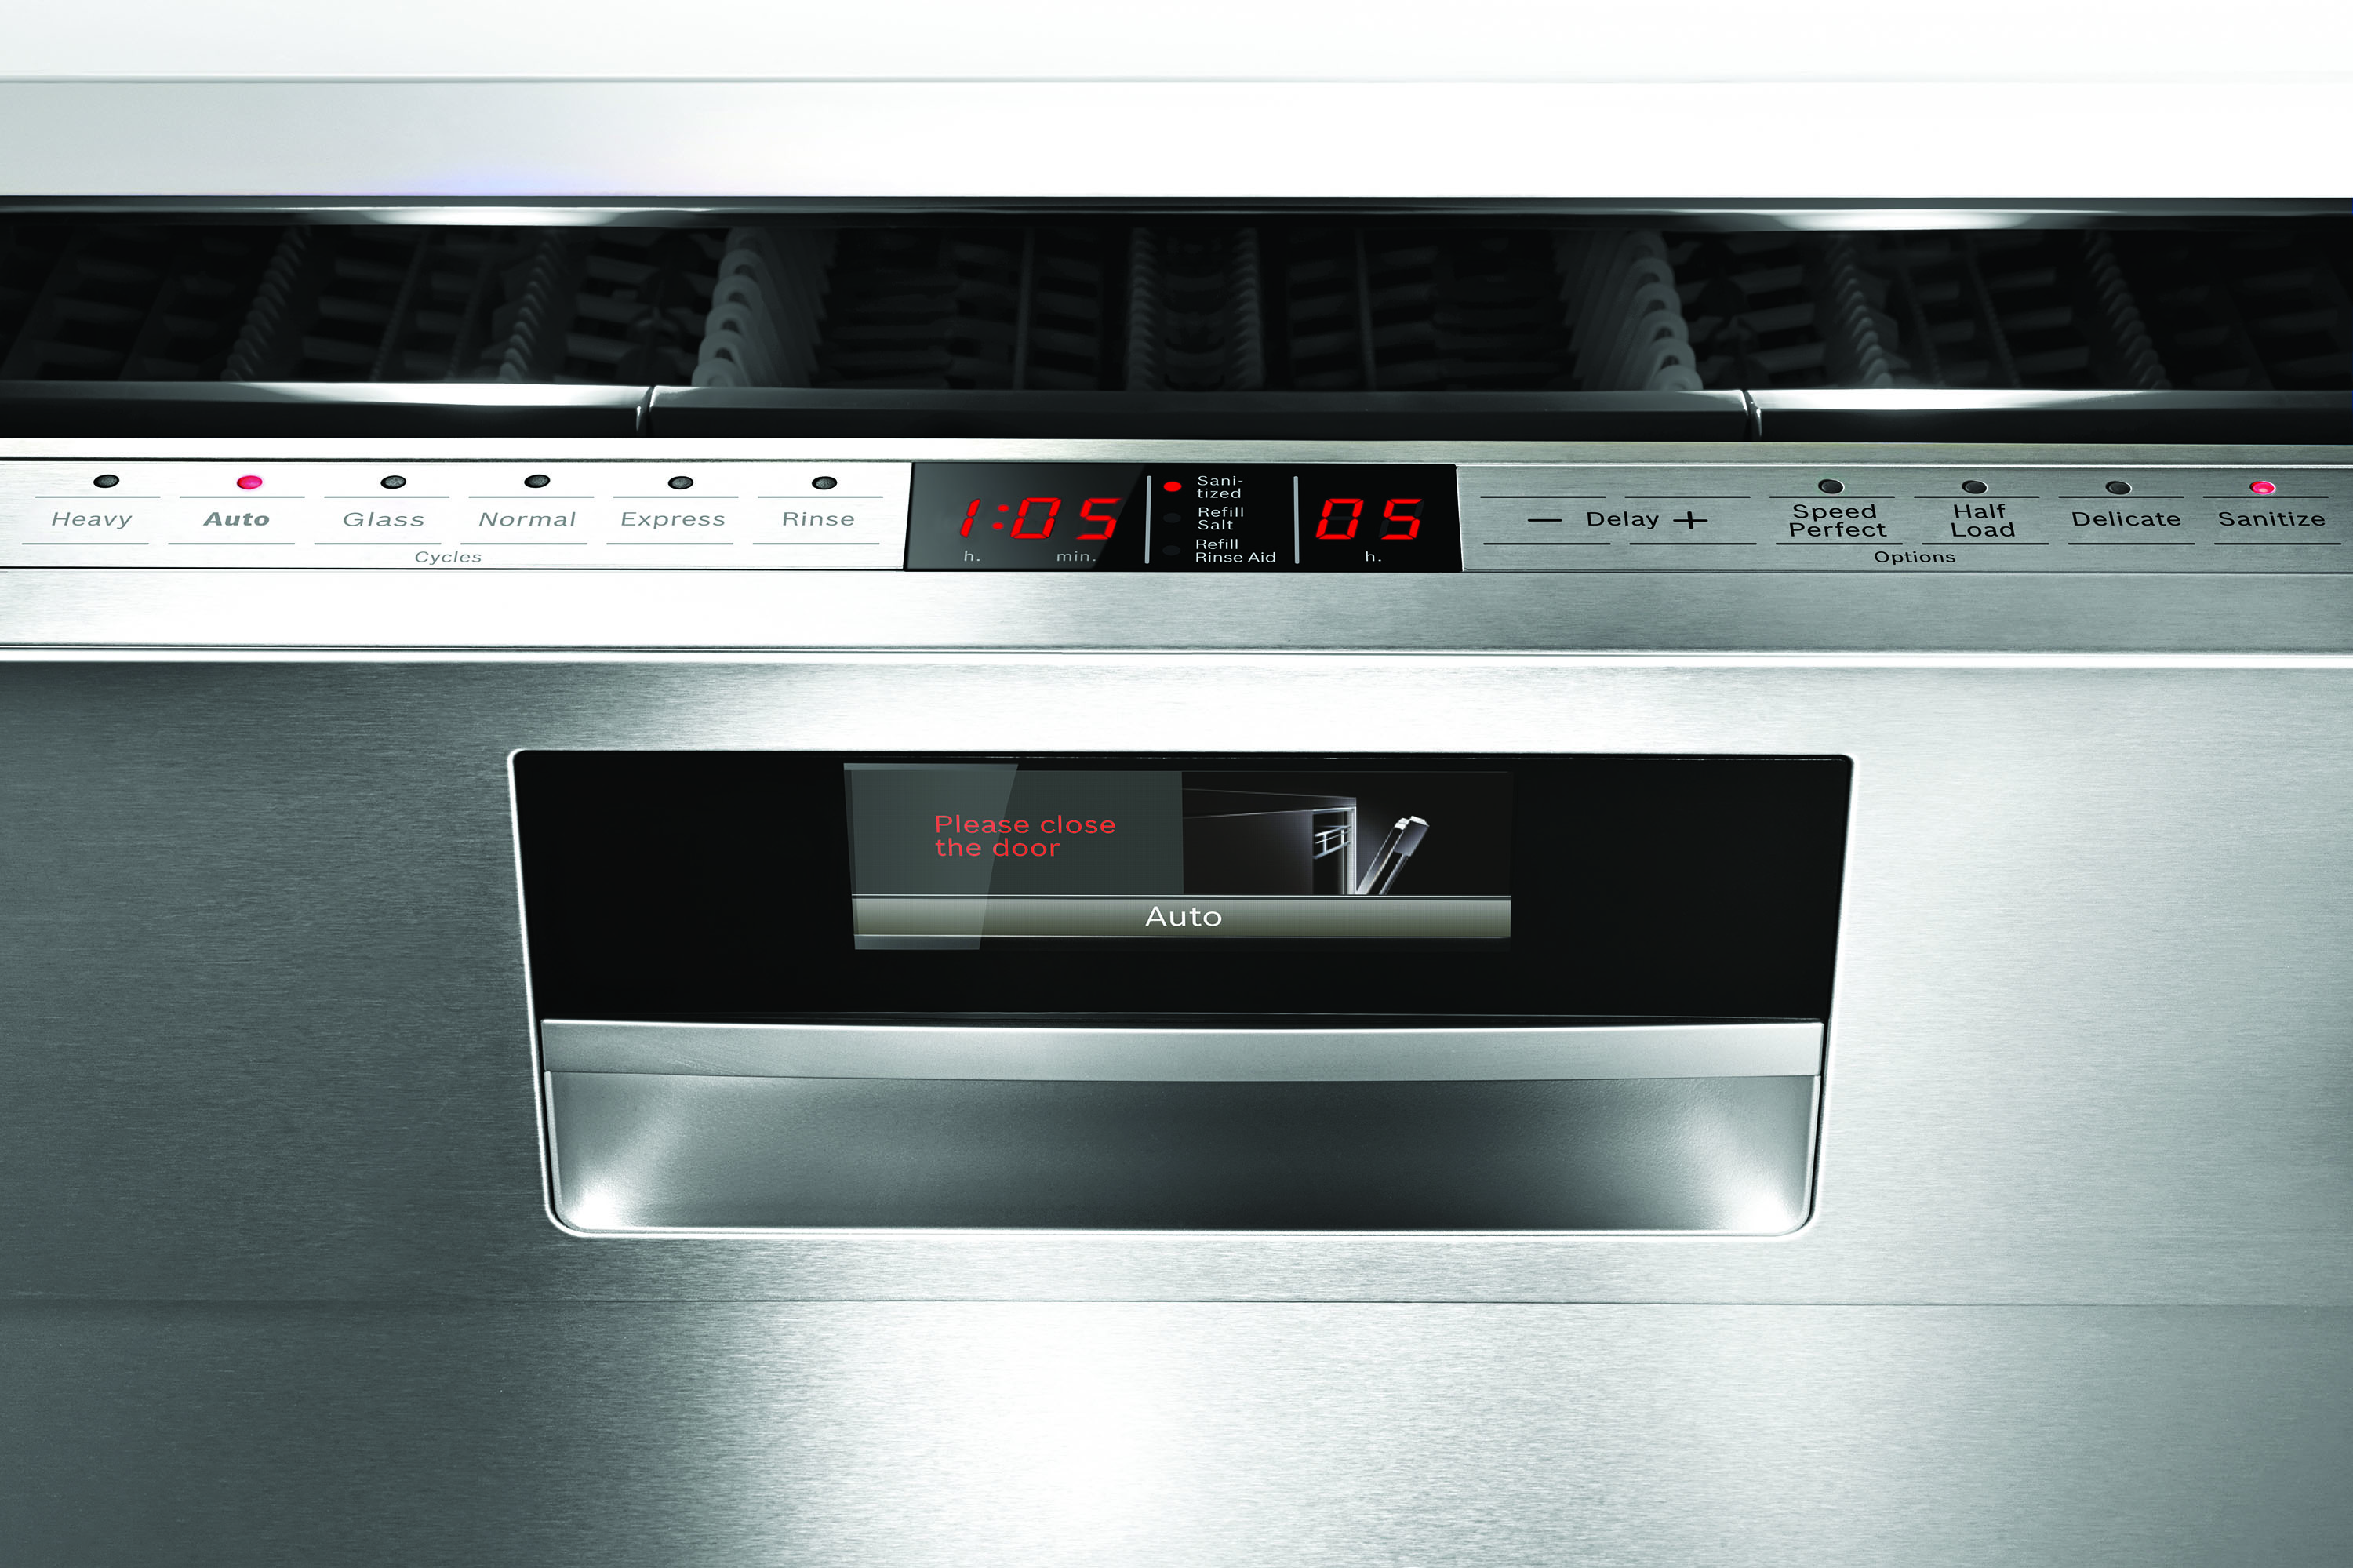 SquareMelon- Bosch Dishwasher TFT Display